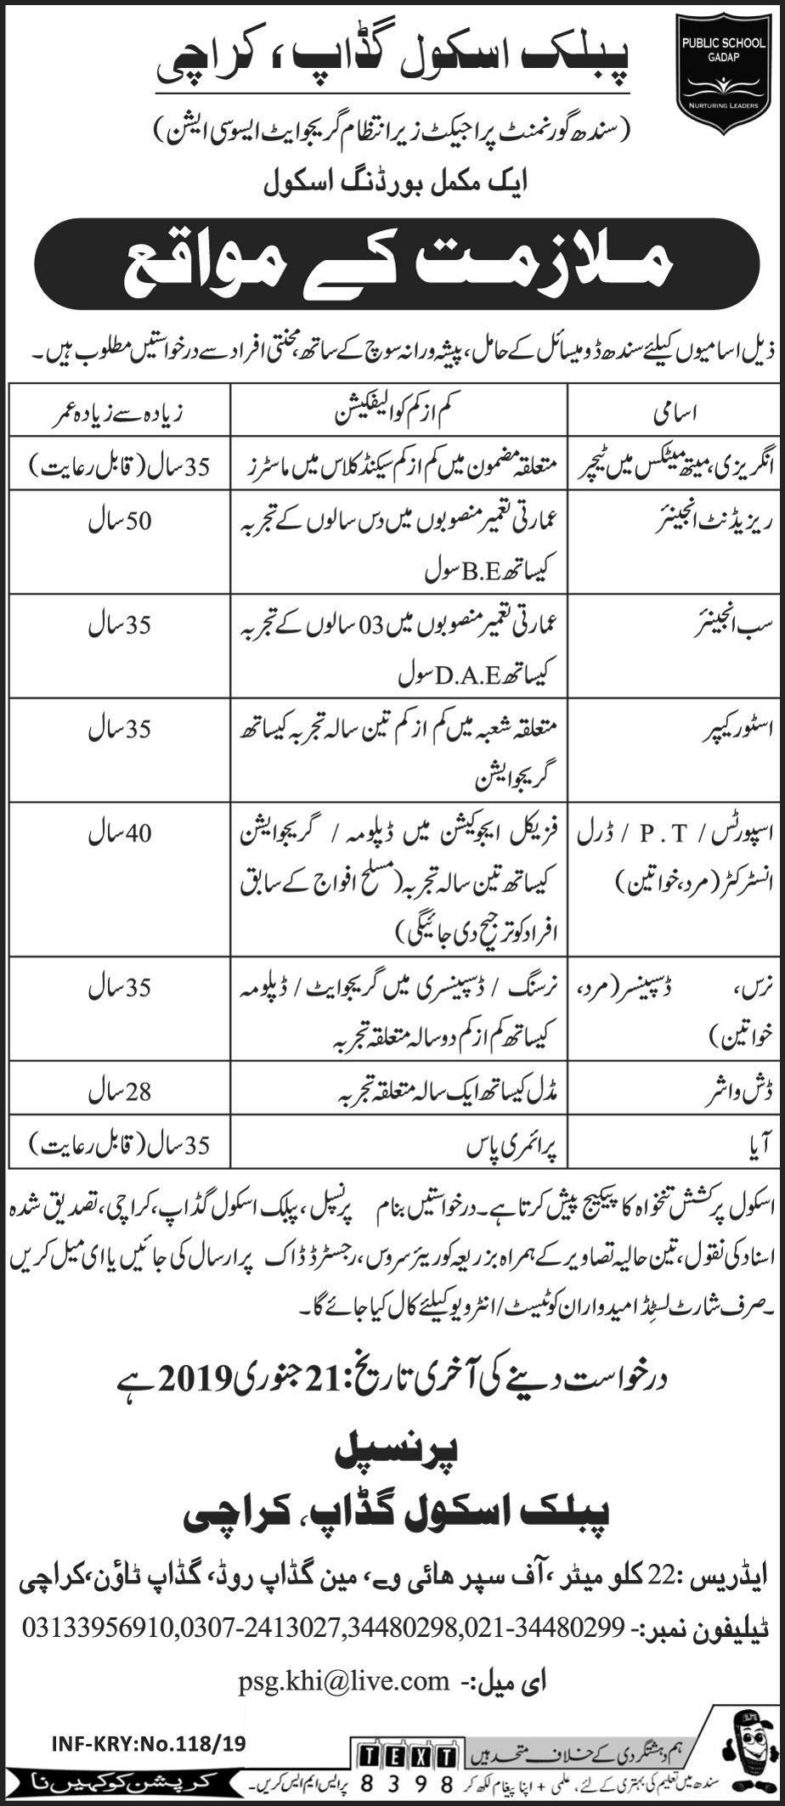 Public School Gadap Karachi Jobs 2019 for Engineers, Sport/PTI, Nurse and Teachers